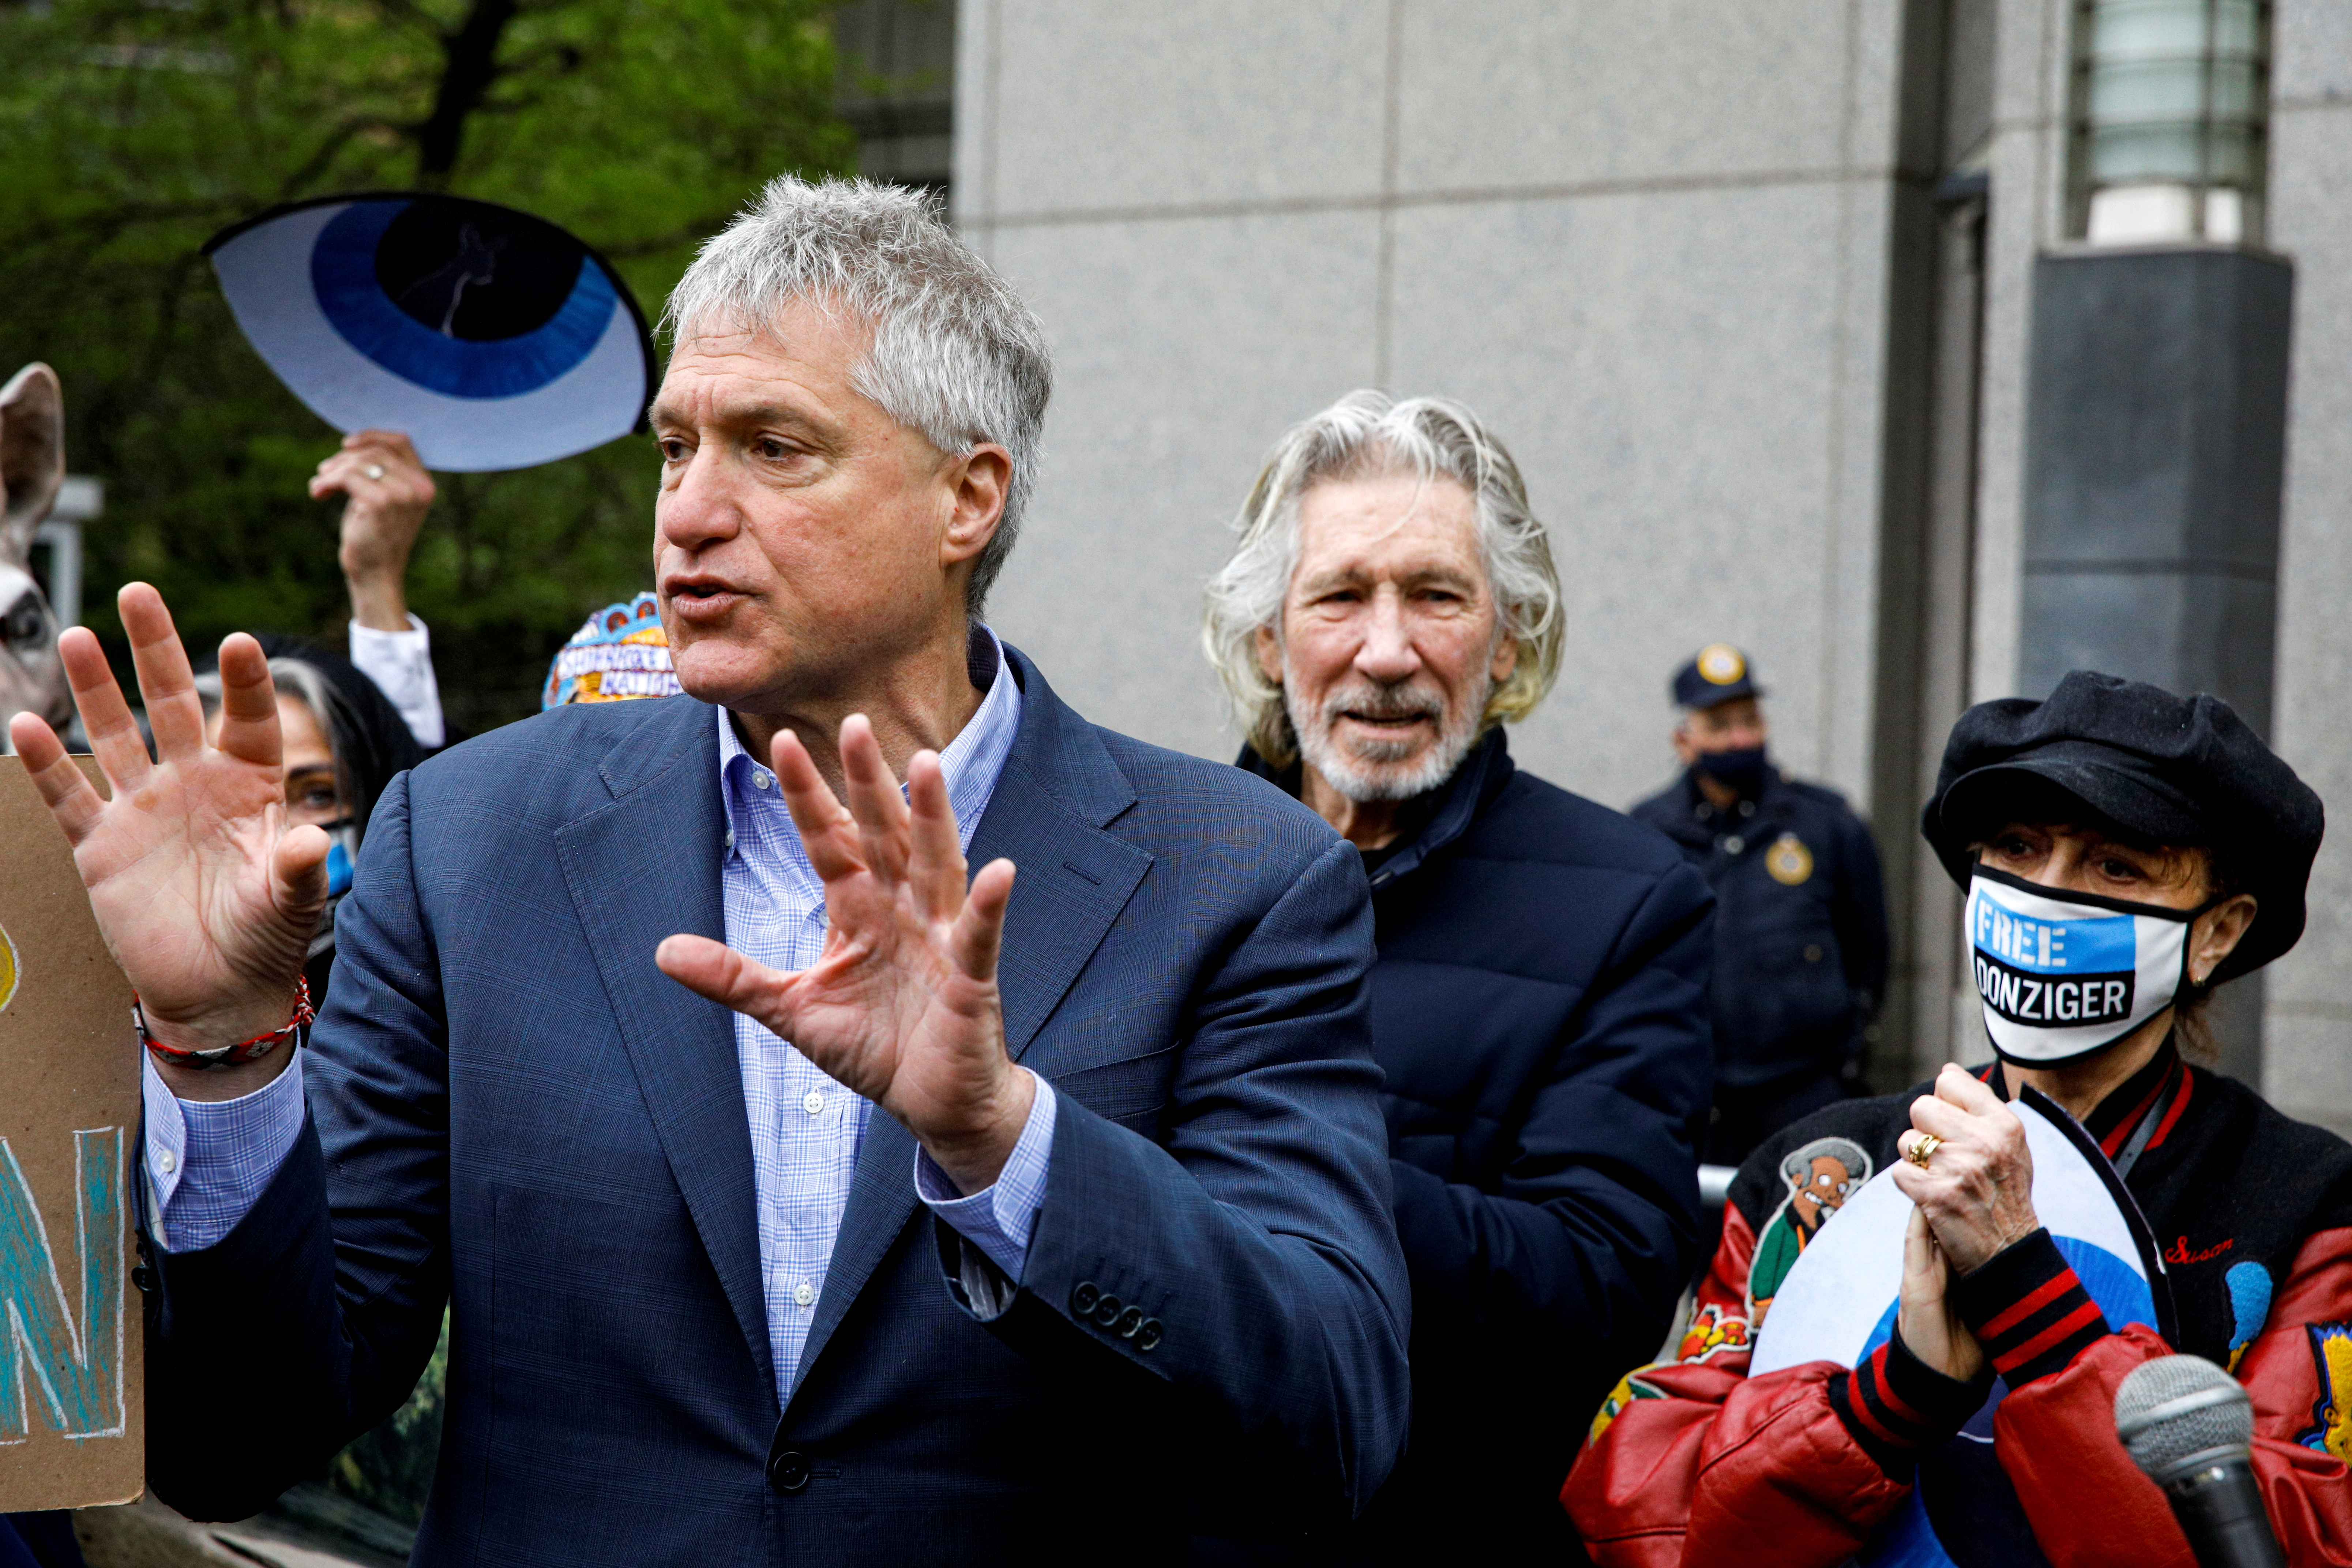 Attorney Steven Donziger, who won a multi-billion dollar judgment against Chevron on behalf of Ecuadorian villagers, speaks to supporters with Singer Roger Waters and actor Susan Sarandon, as he arrives for his criminal contempt trail at the Manhattan Federal Courthouse in the Manhattan borough of New York City, New York, U.S., May 10, 2021.  REUTERS/Brendan McDermid